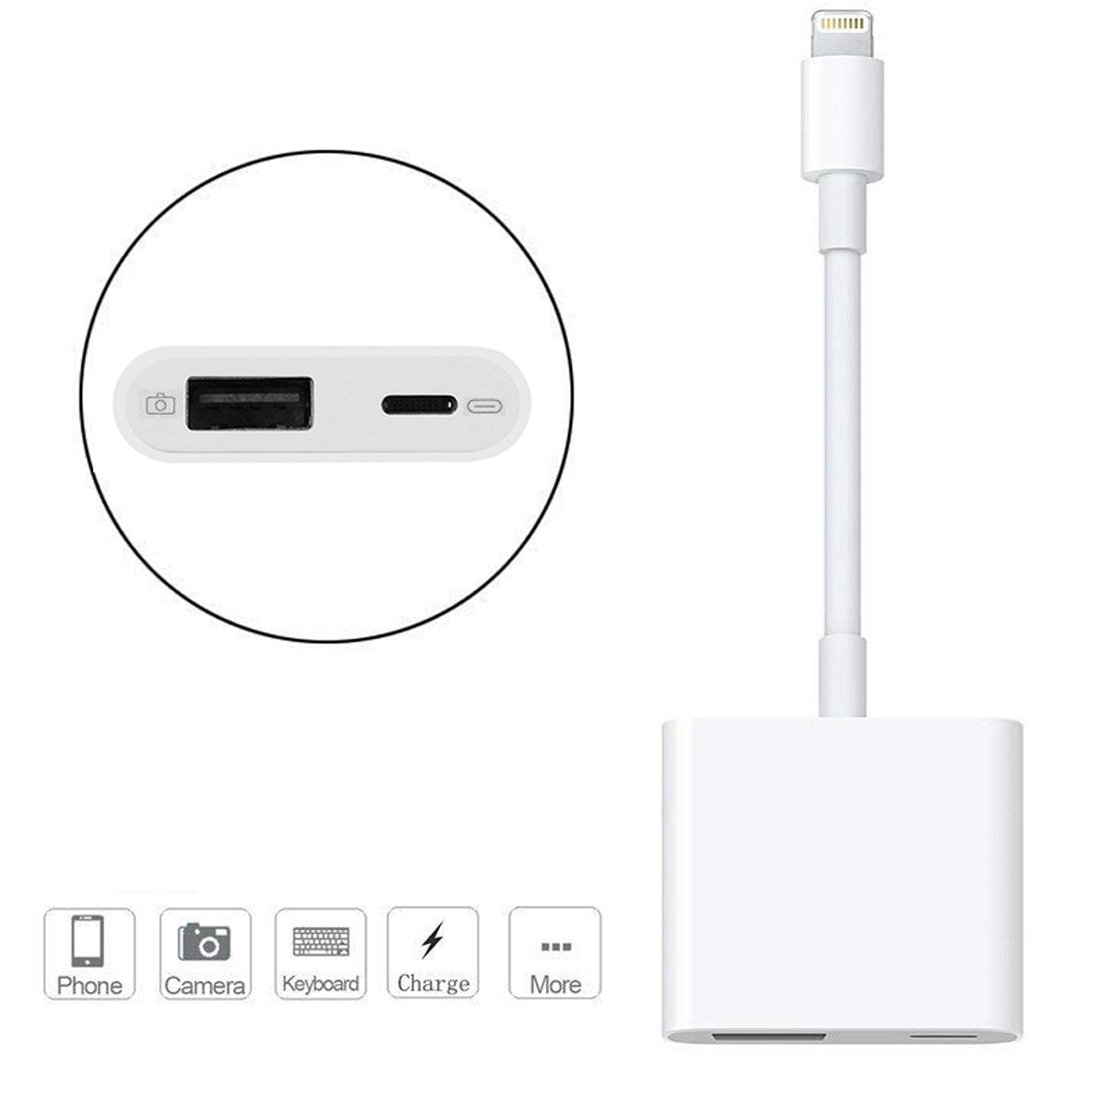 Lightning to USB Camera Adapter, Lightning to USB 3.0 Female OTG Adapter Cable With Charging Interface for iPhone/iPad,No App Required, Supporting card readers, Keyboard and audio/midi interfaces